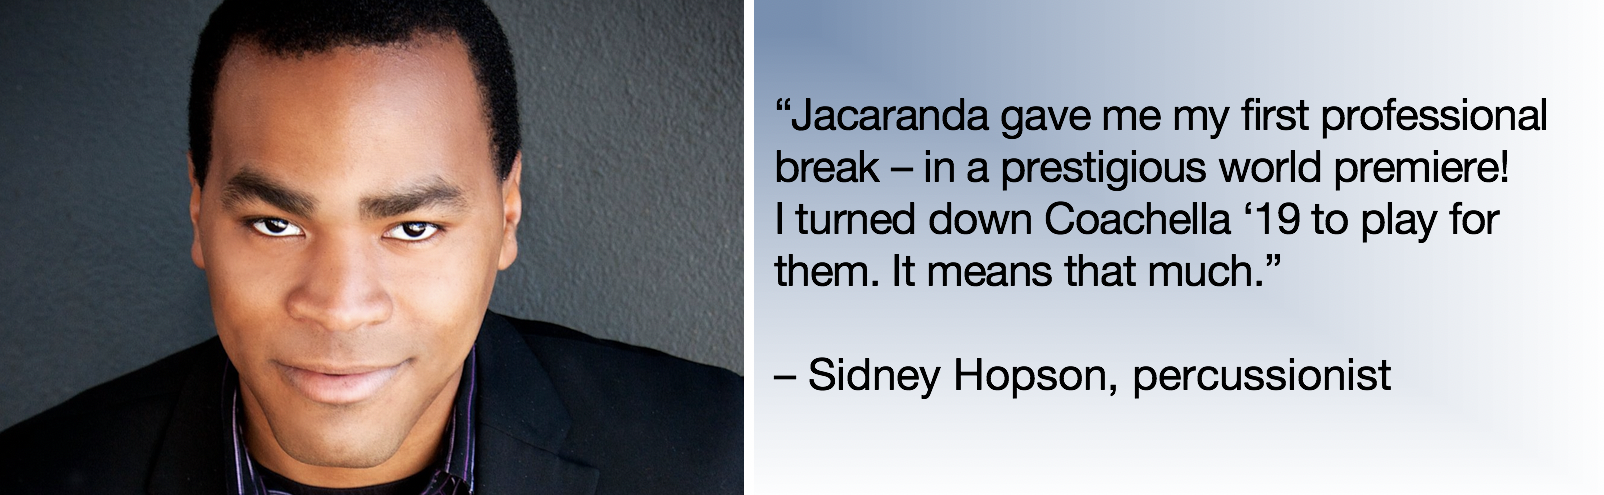 "l: photo, sidney hopson r: text: ""Jacaranda gave me my first professional break – in a prestigious world premiere! i turned down coachella '19 to play for them. it means that much."" - Sidney Hopson, percussionist"